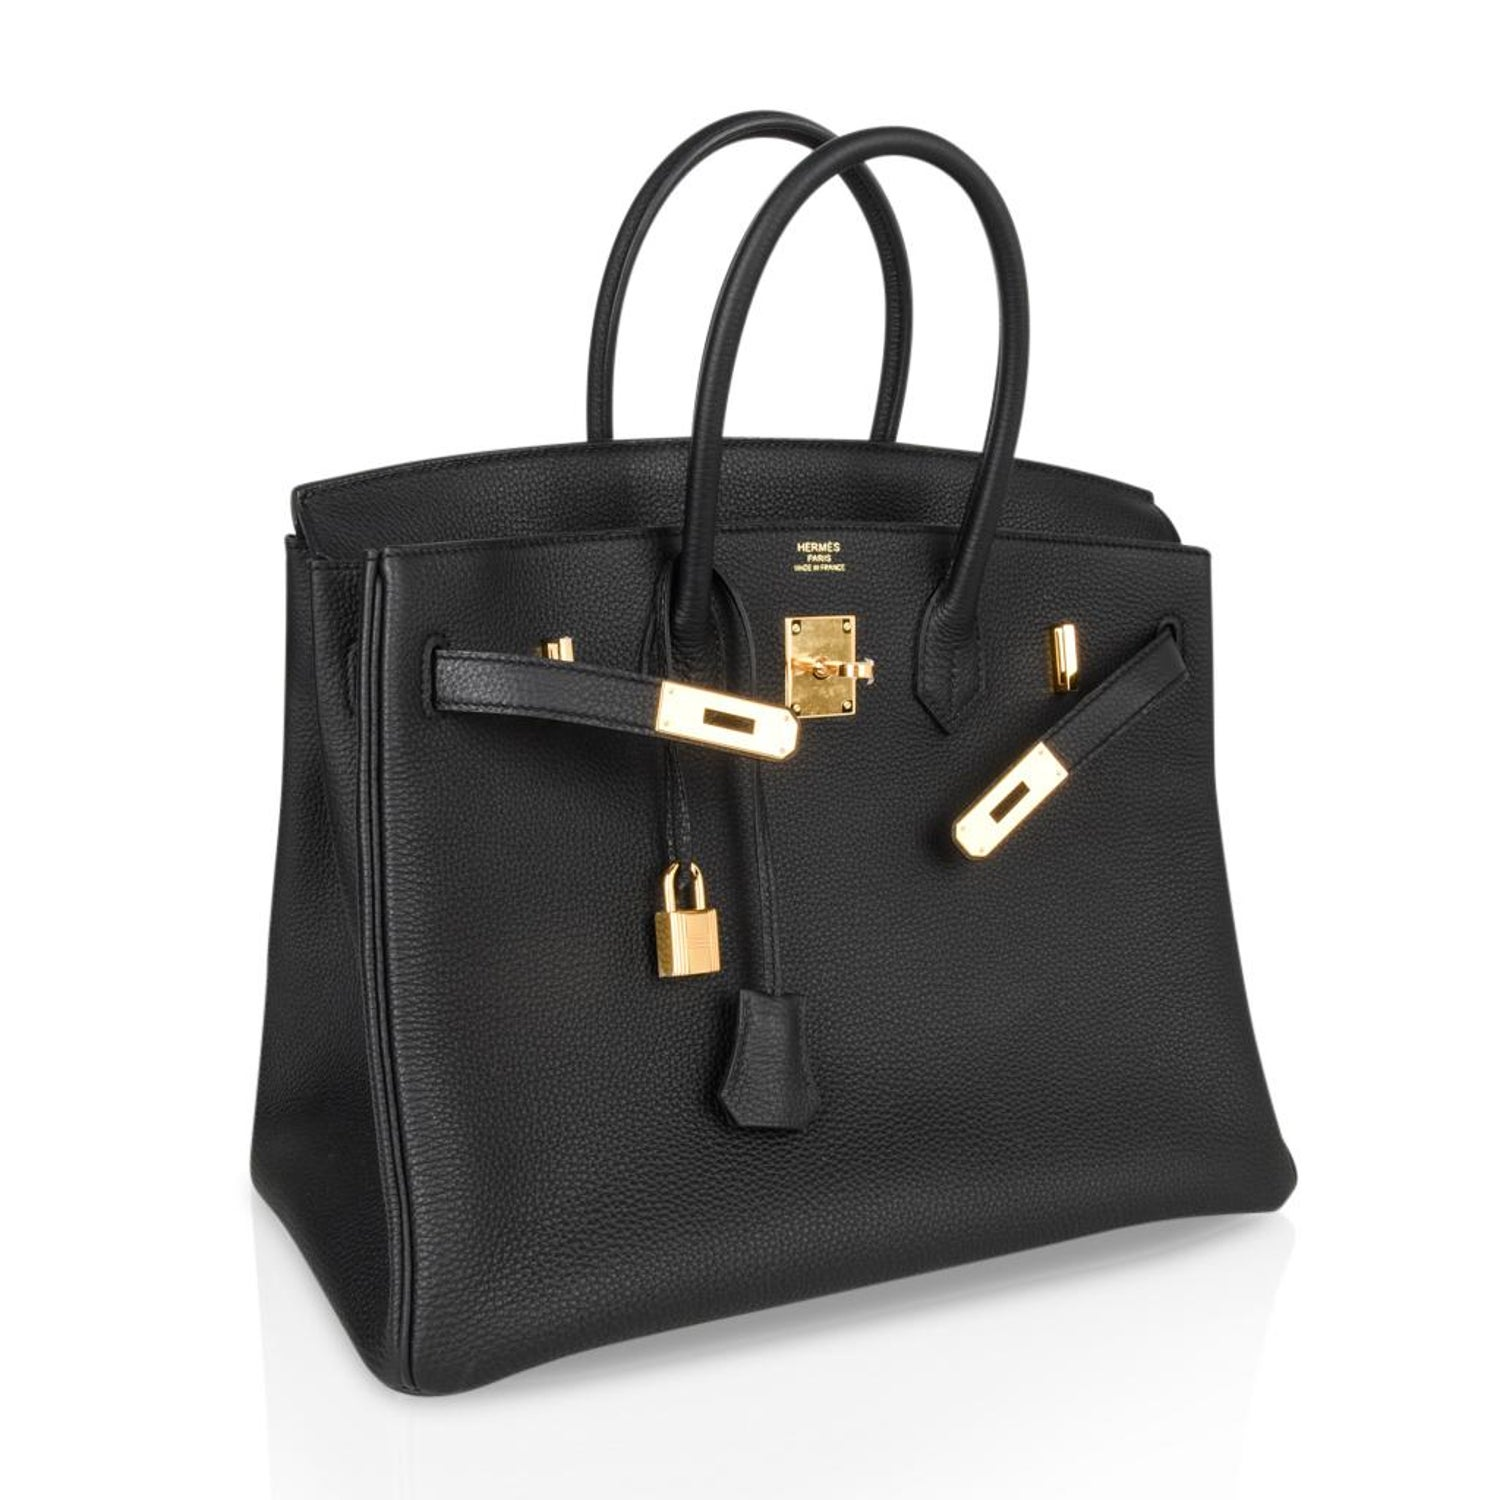 6f94159d6758 Hermes Birkin 35 Bag Black Togo Gold Hardware Ultimate Classic For Sale at  1stdibs